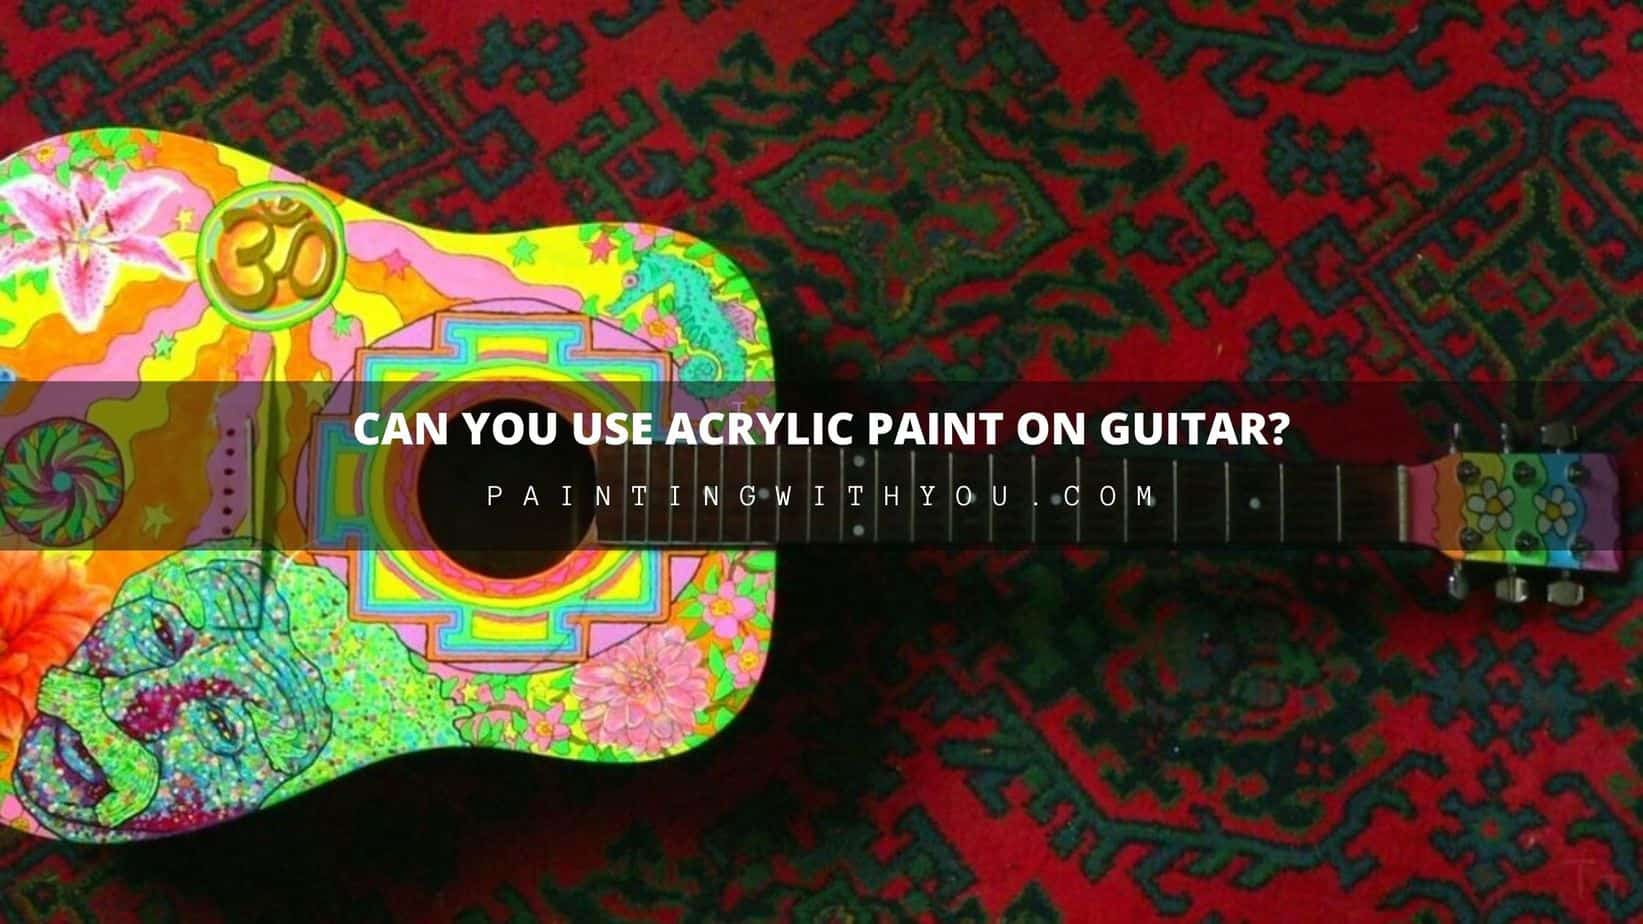 Can You Use Acrylic Paint on Guitar